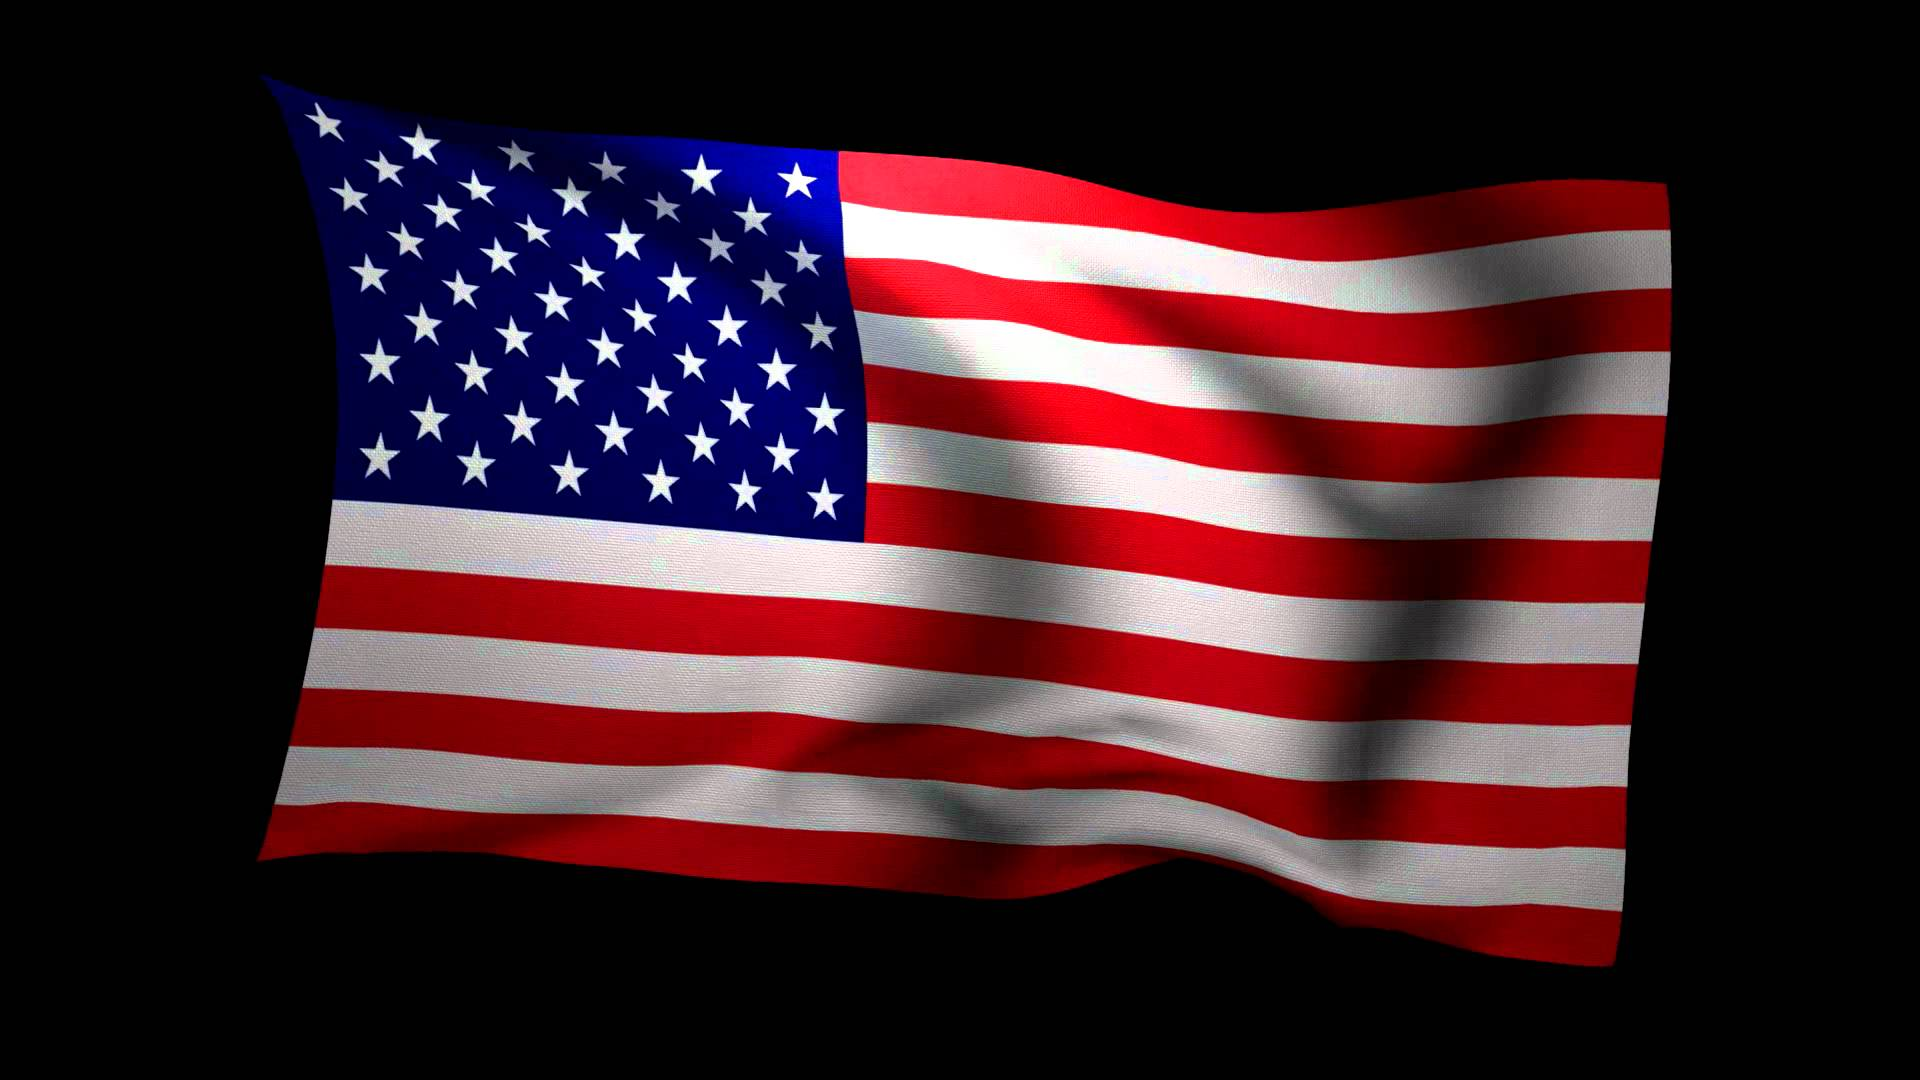 3fbcd31845bf 1920x1080 3d Rendering Of The Flag Of The United States Waving In The Wind